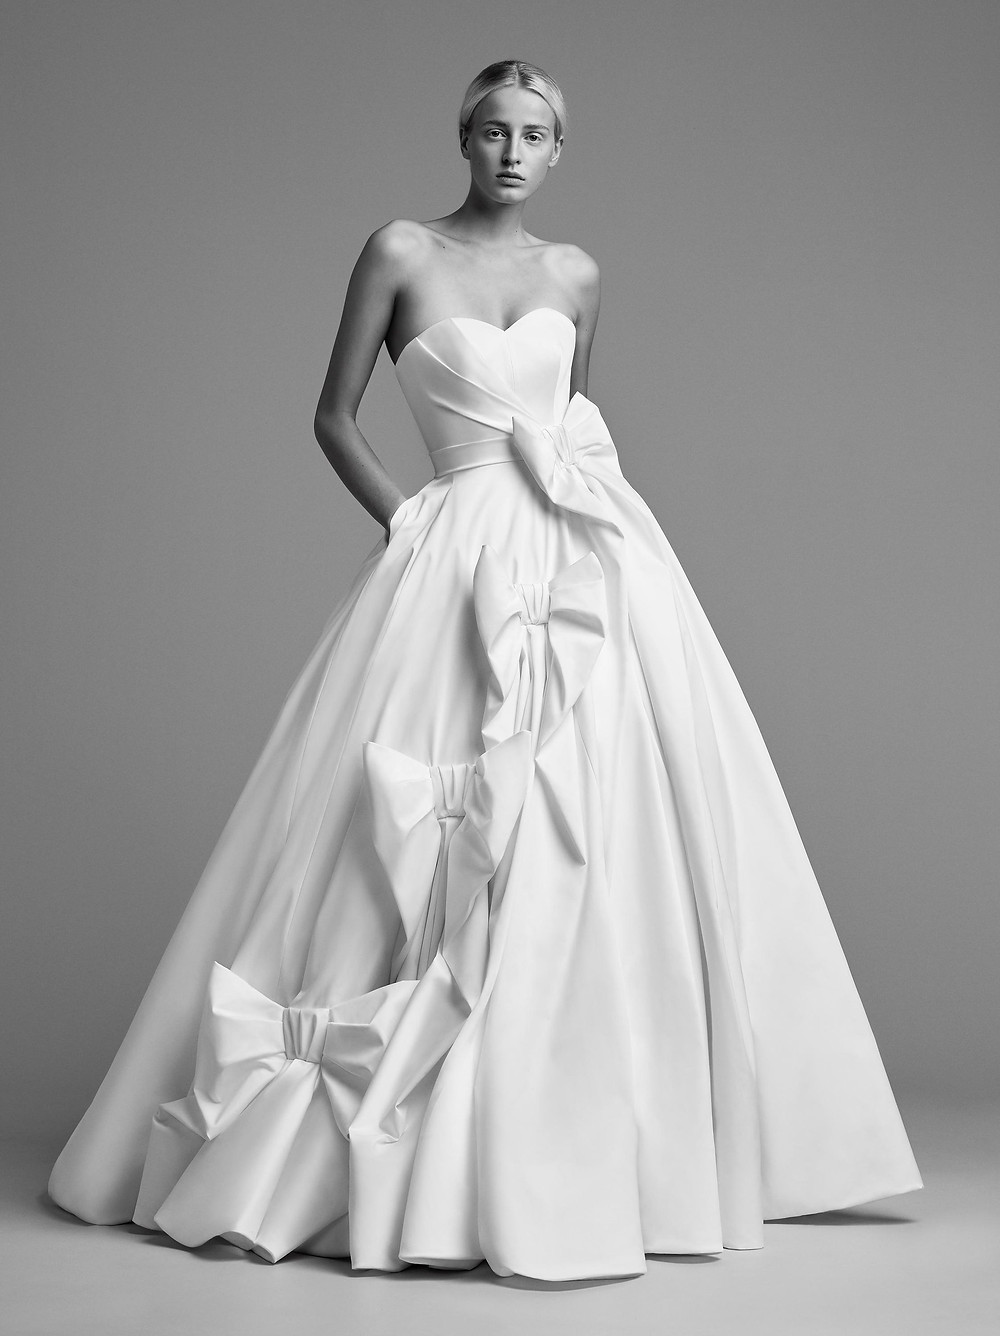 A Viktor & Rolf strapless crepe ball gown wedding dress with a sweetheart neckline and bows